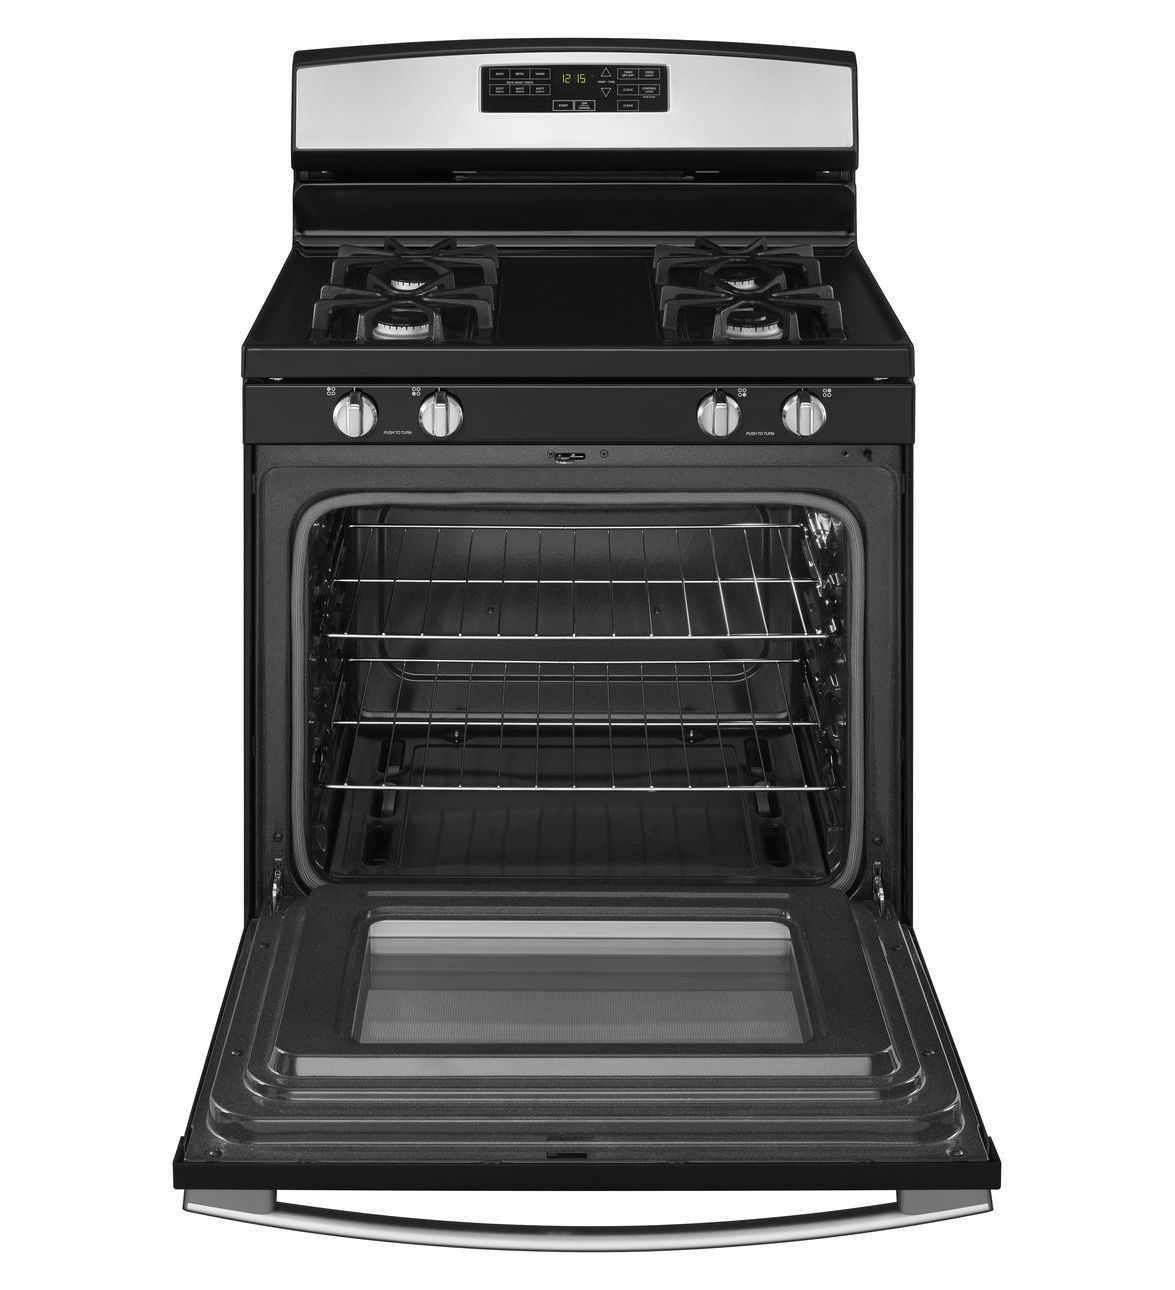 (AGR6603SFS) 30-inch Gas Range With Self-Clean Option